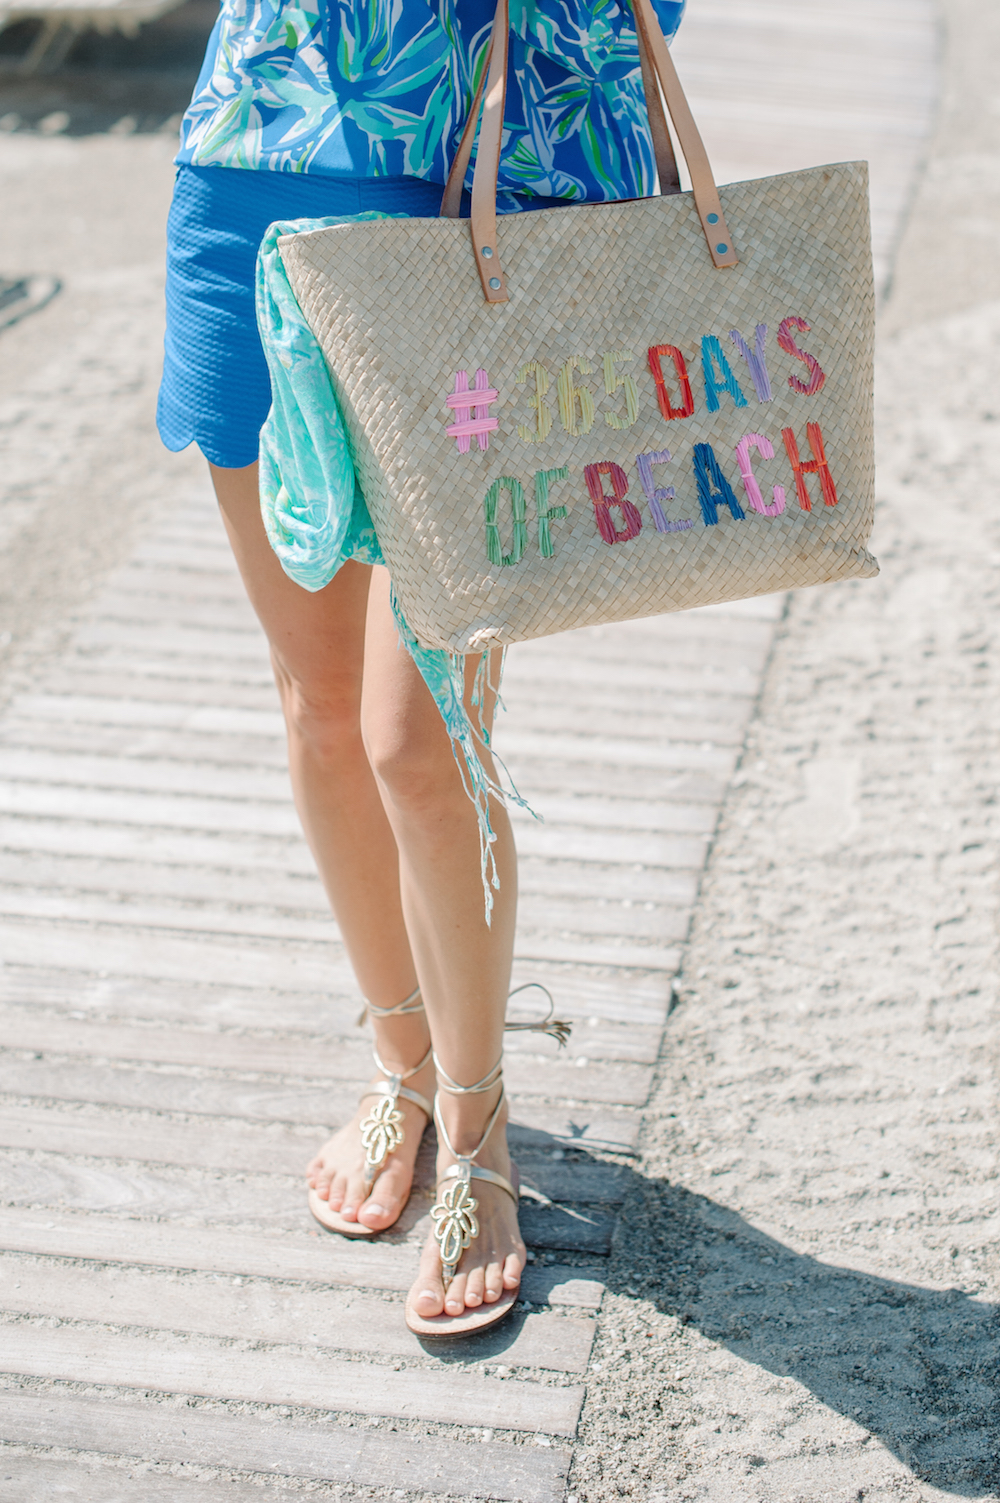 vacation_ocean_blue_the_breakers_palm_beach_lilly_pulitzer_fashion_gladiator_sandals_tote